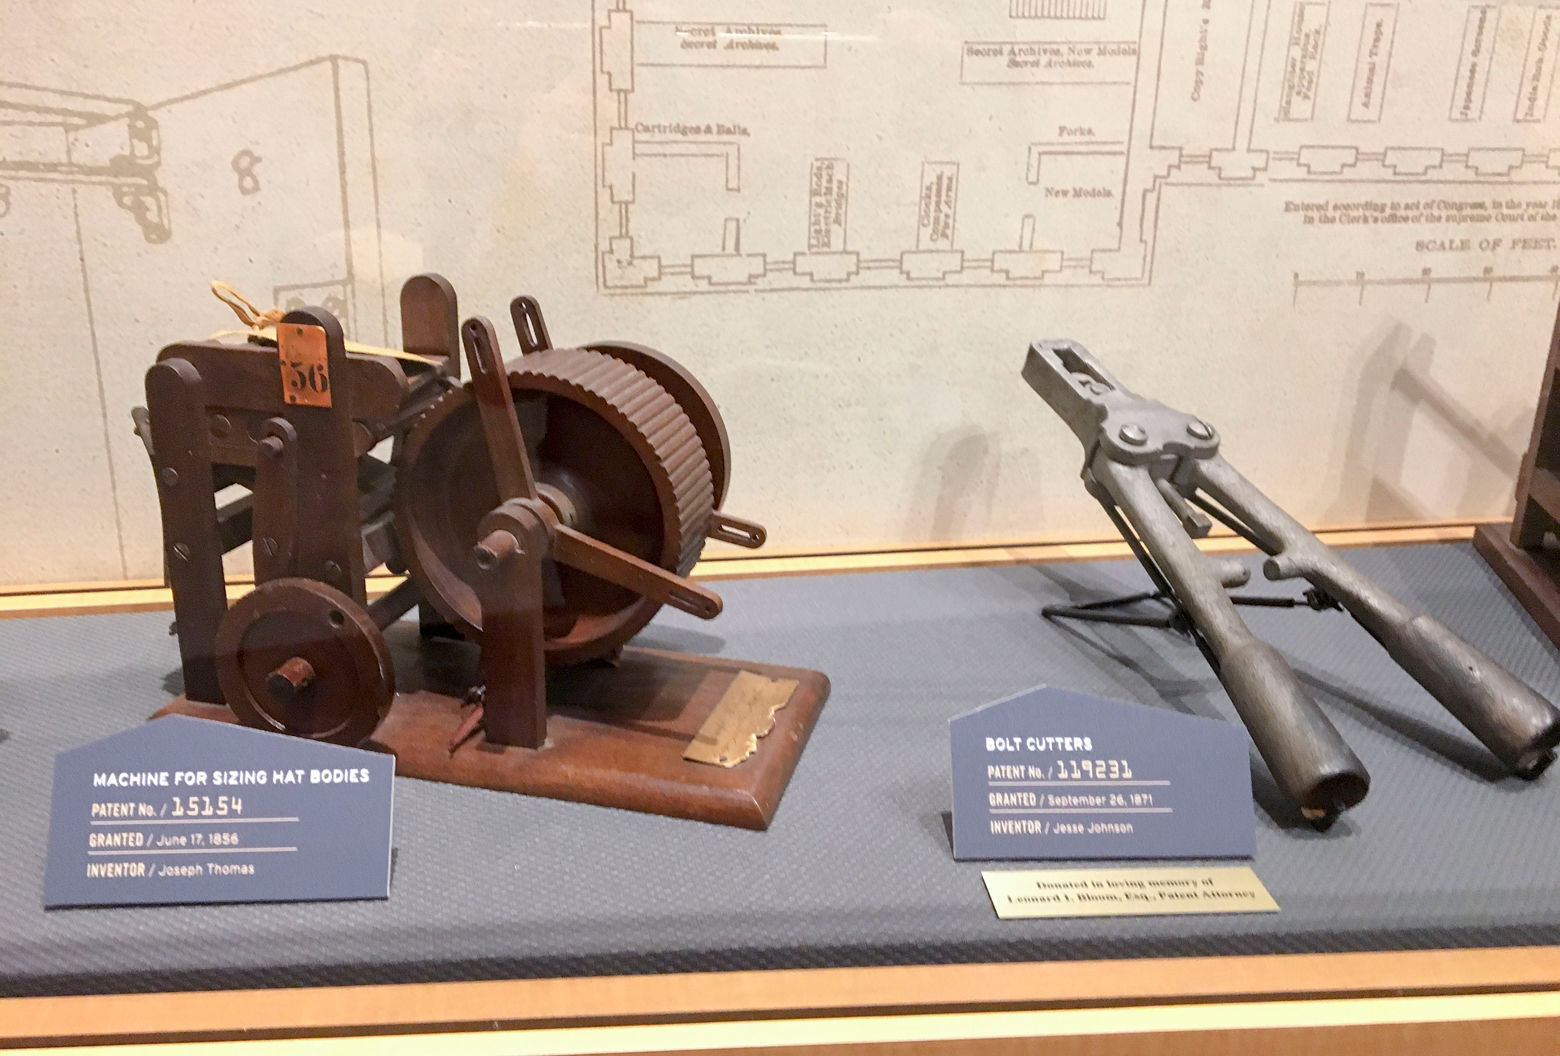 Nine museums in Alexandria will display inventions submitted for patents by early inventors. (Courtesy National Inventors Hall of Fame Museum)